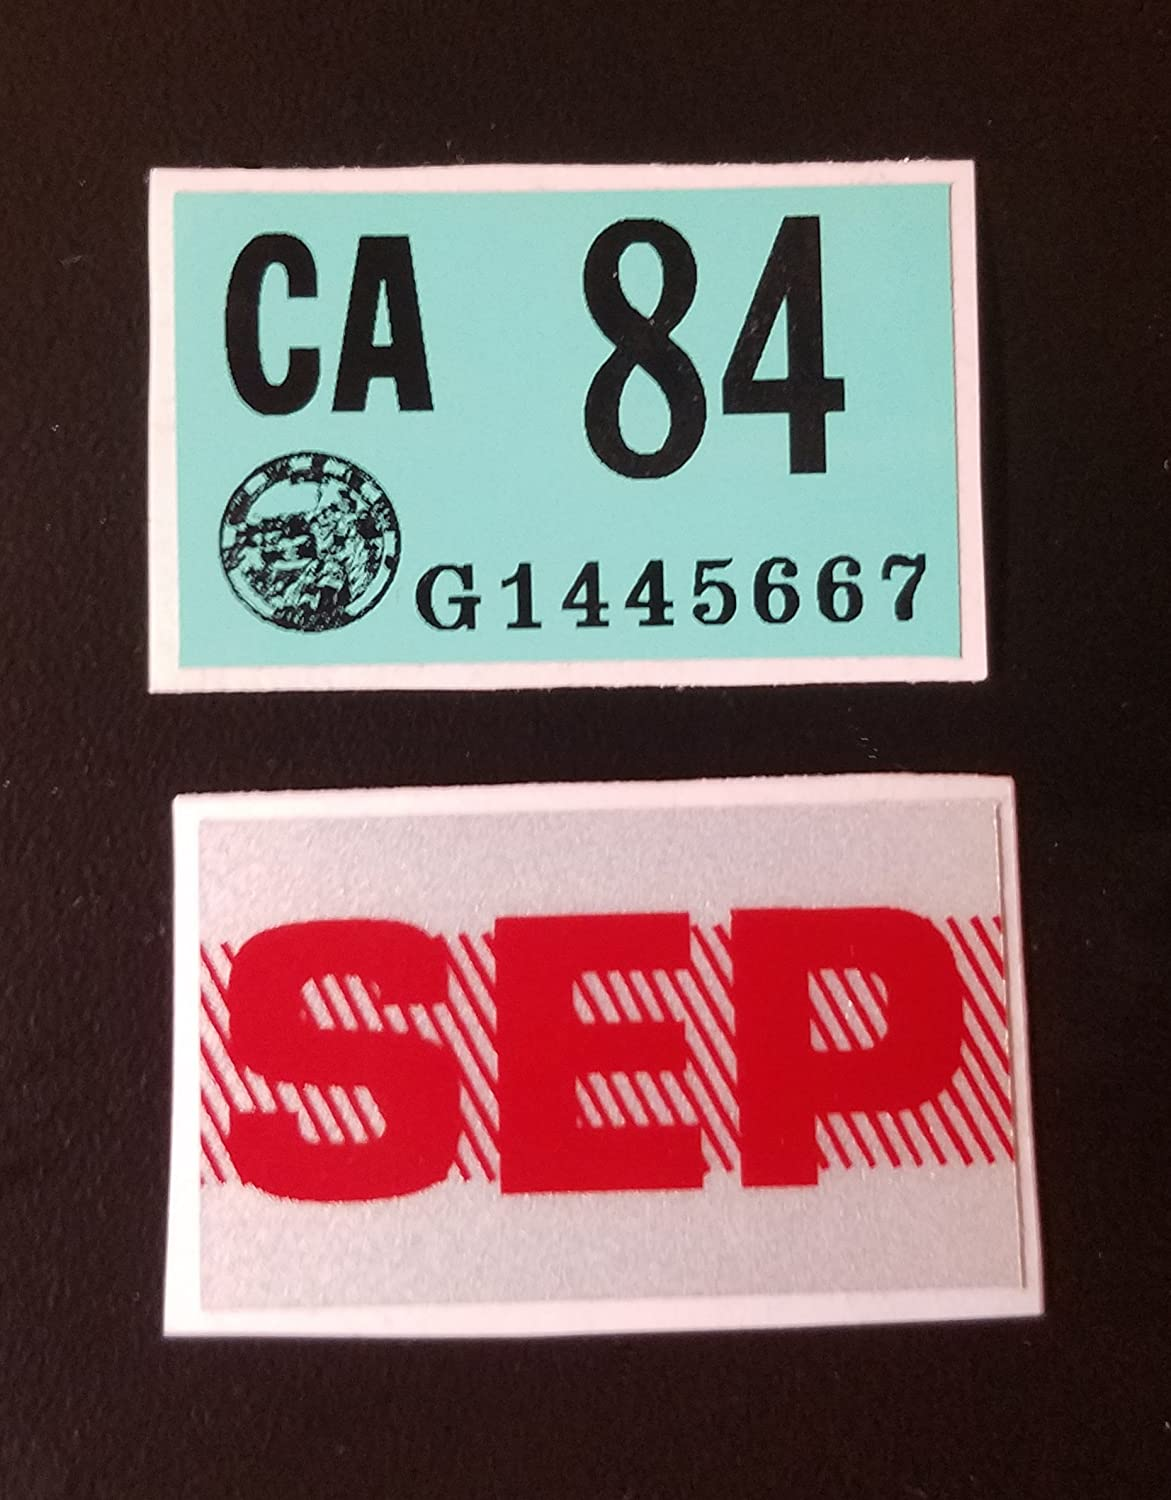 Metal Stamped License Plate KNI 667 Knight Rider